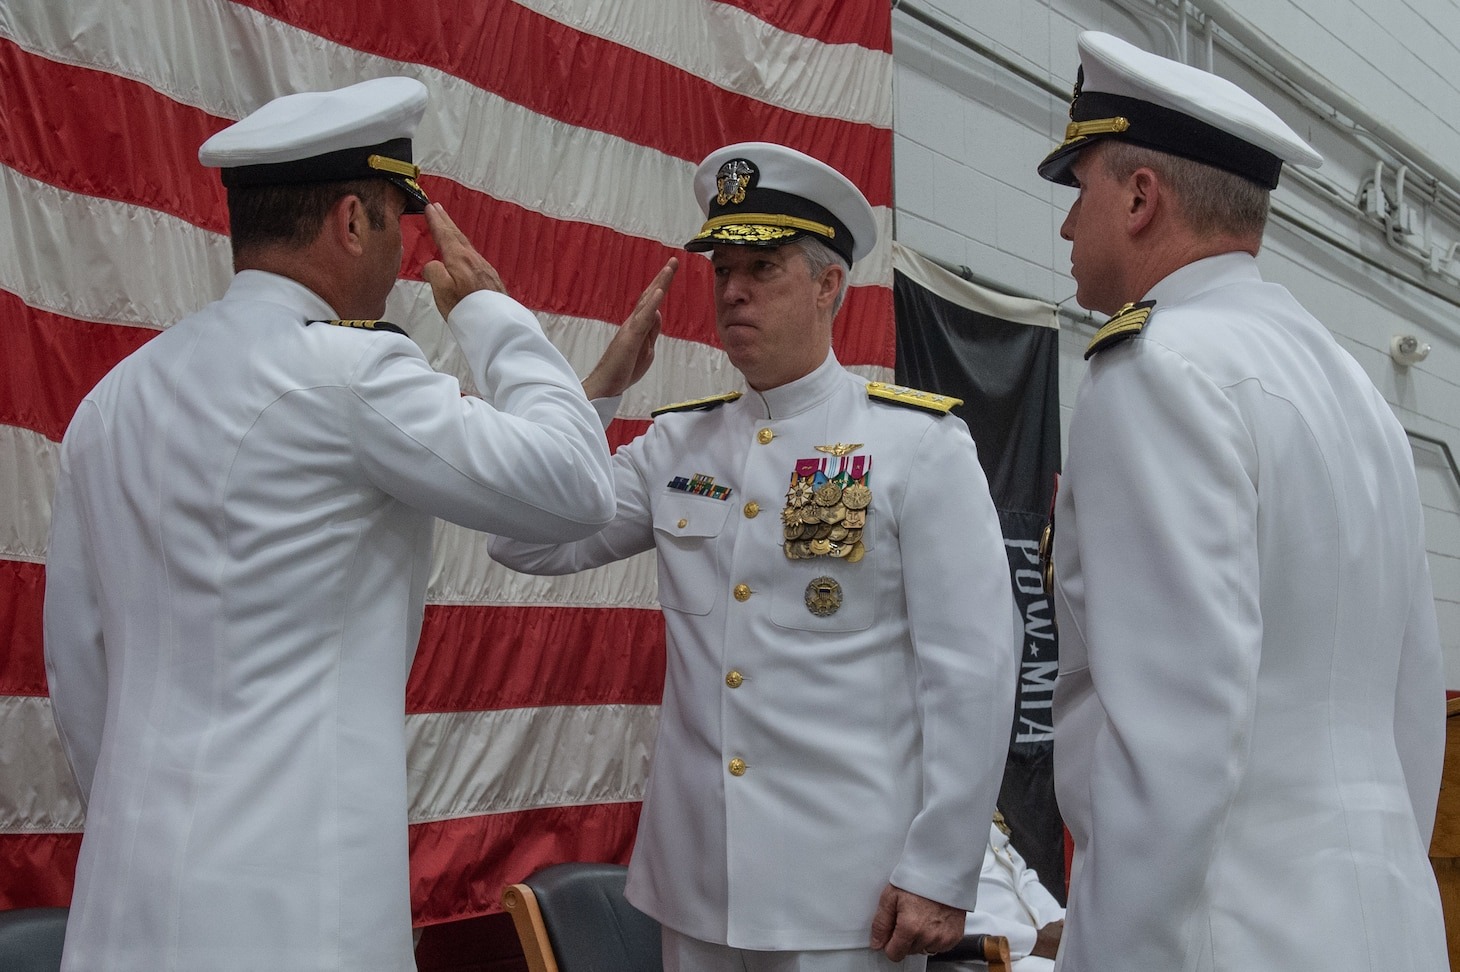 Rear Adm. John F. Meier, Commander, Naval Air Force Atlantic, salutes Capt. Brian C. Becker, outgoing Commander, Strike Fighter Wing Atlantic (CSFWL), during a change of command ceremony